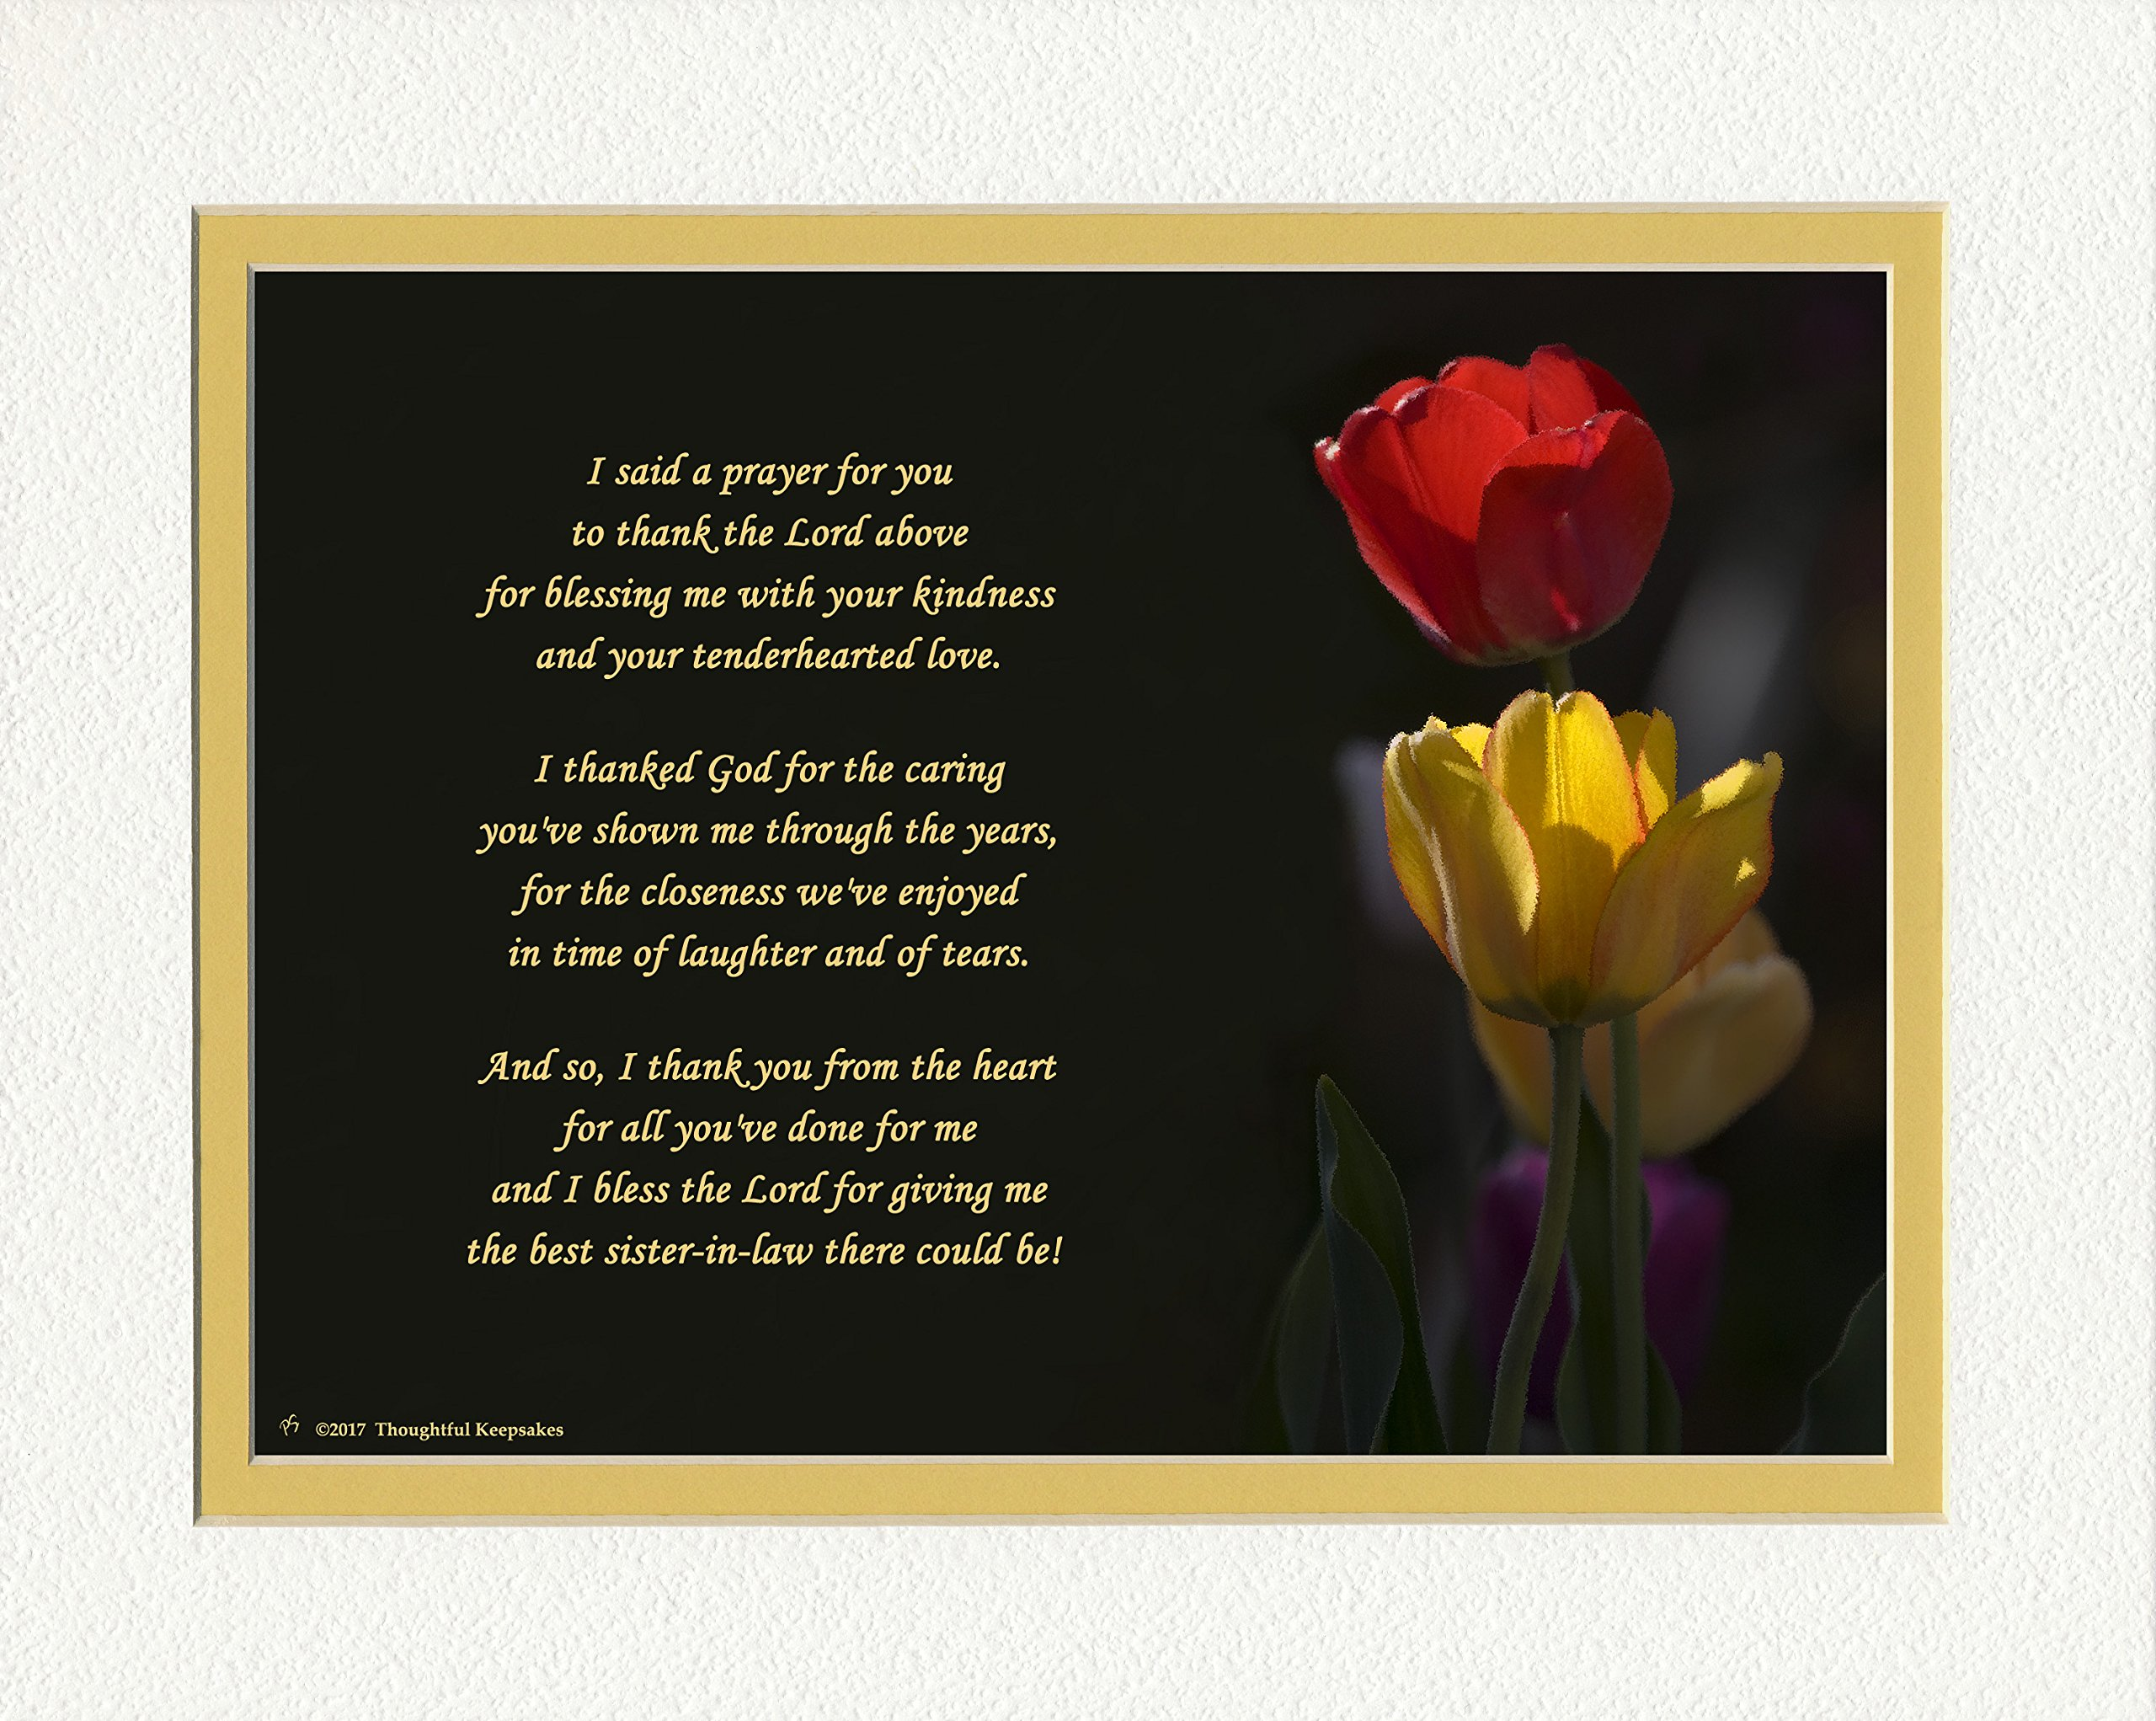 Sister-in-Law Gift with Thank You Prayer for Best Sister in law Poem. Red & Yellow Tulips Photo, 8x10 Double Matted. Special Birthday Gifts, Thank You Gift or for Sister-in-Law.